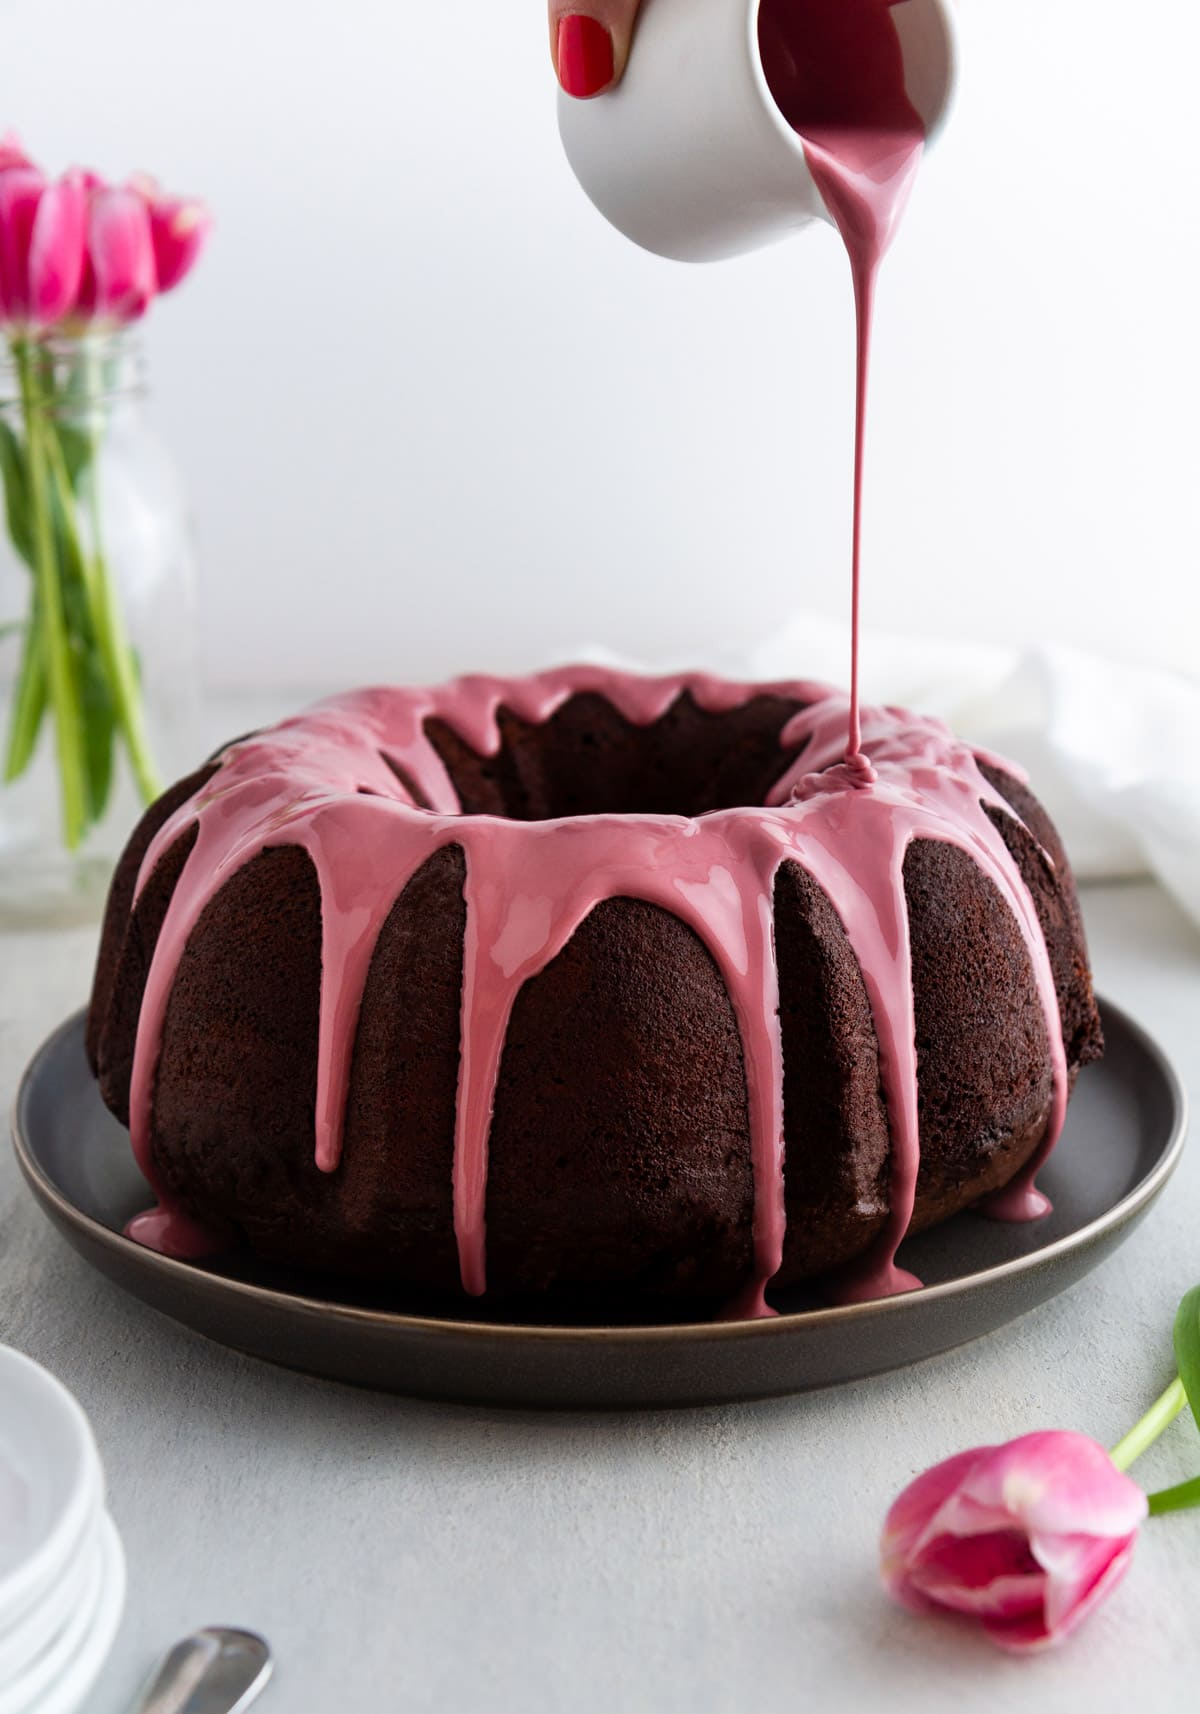 drizzling ruby chocolate on a chocolate bundt cake